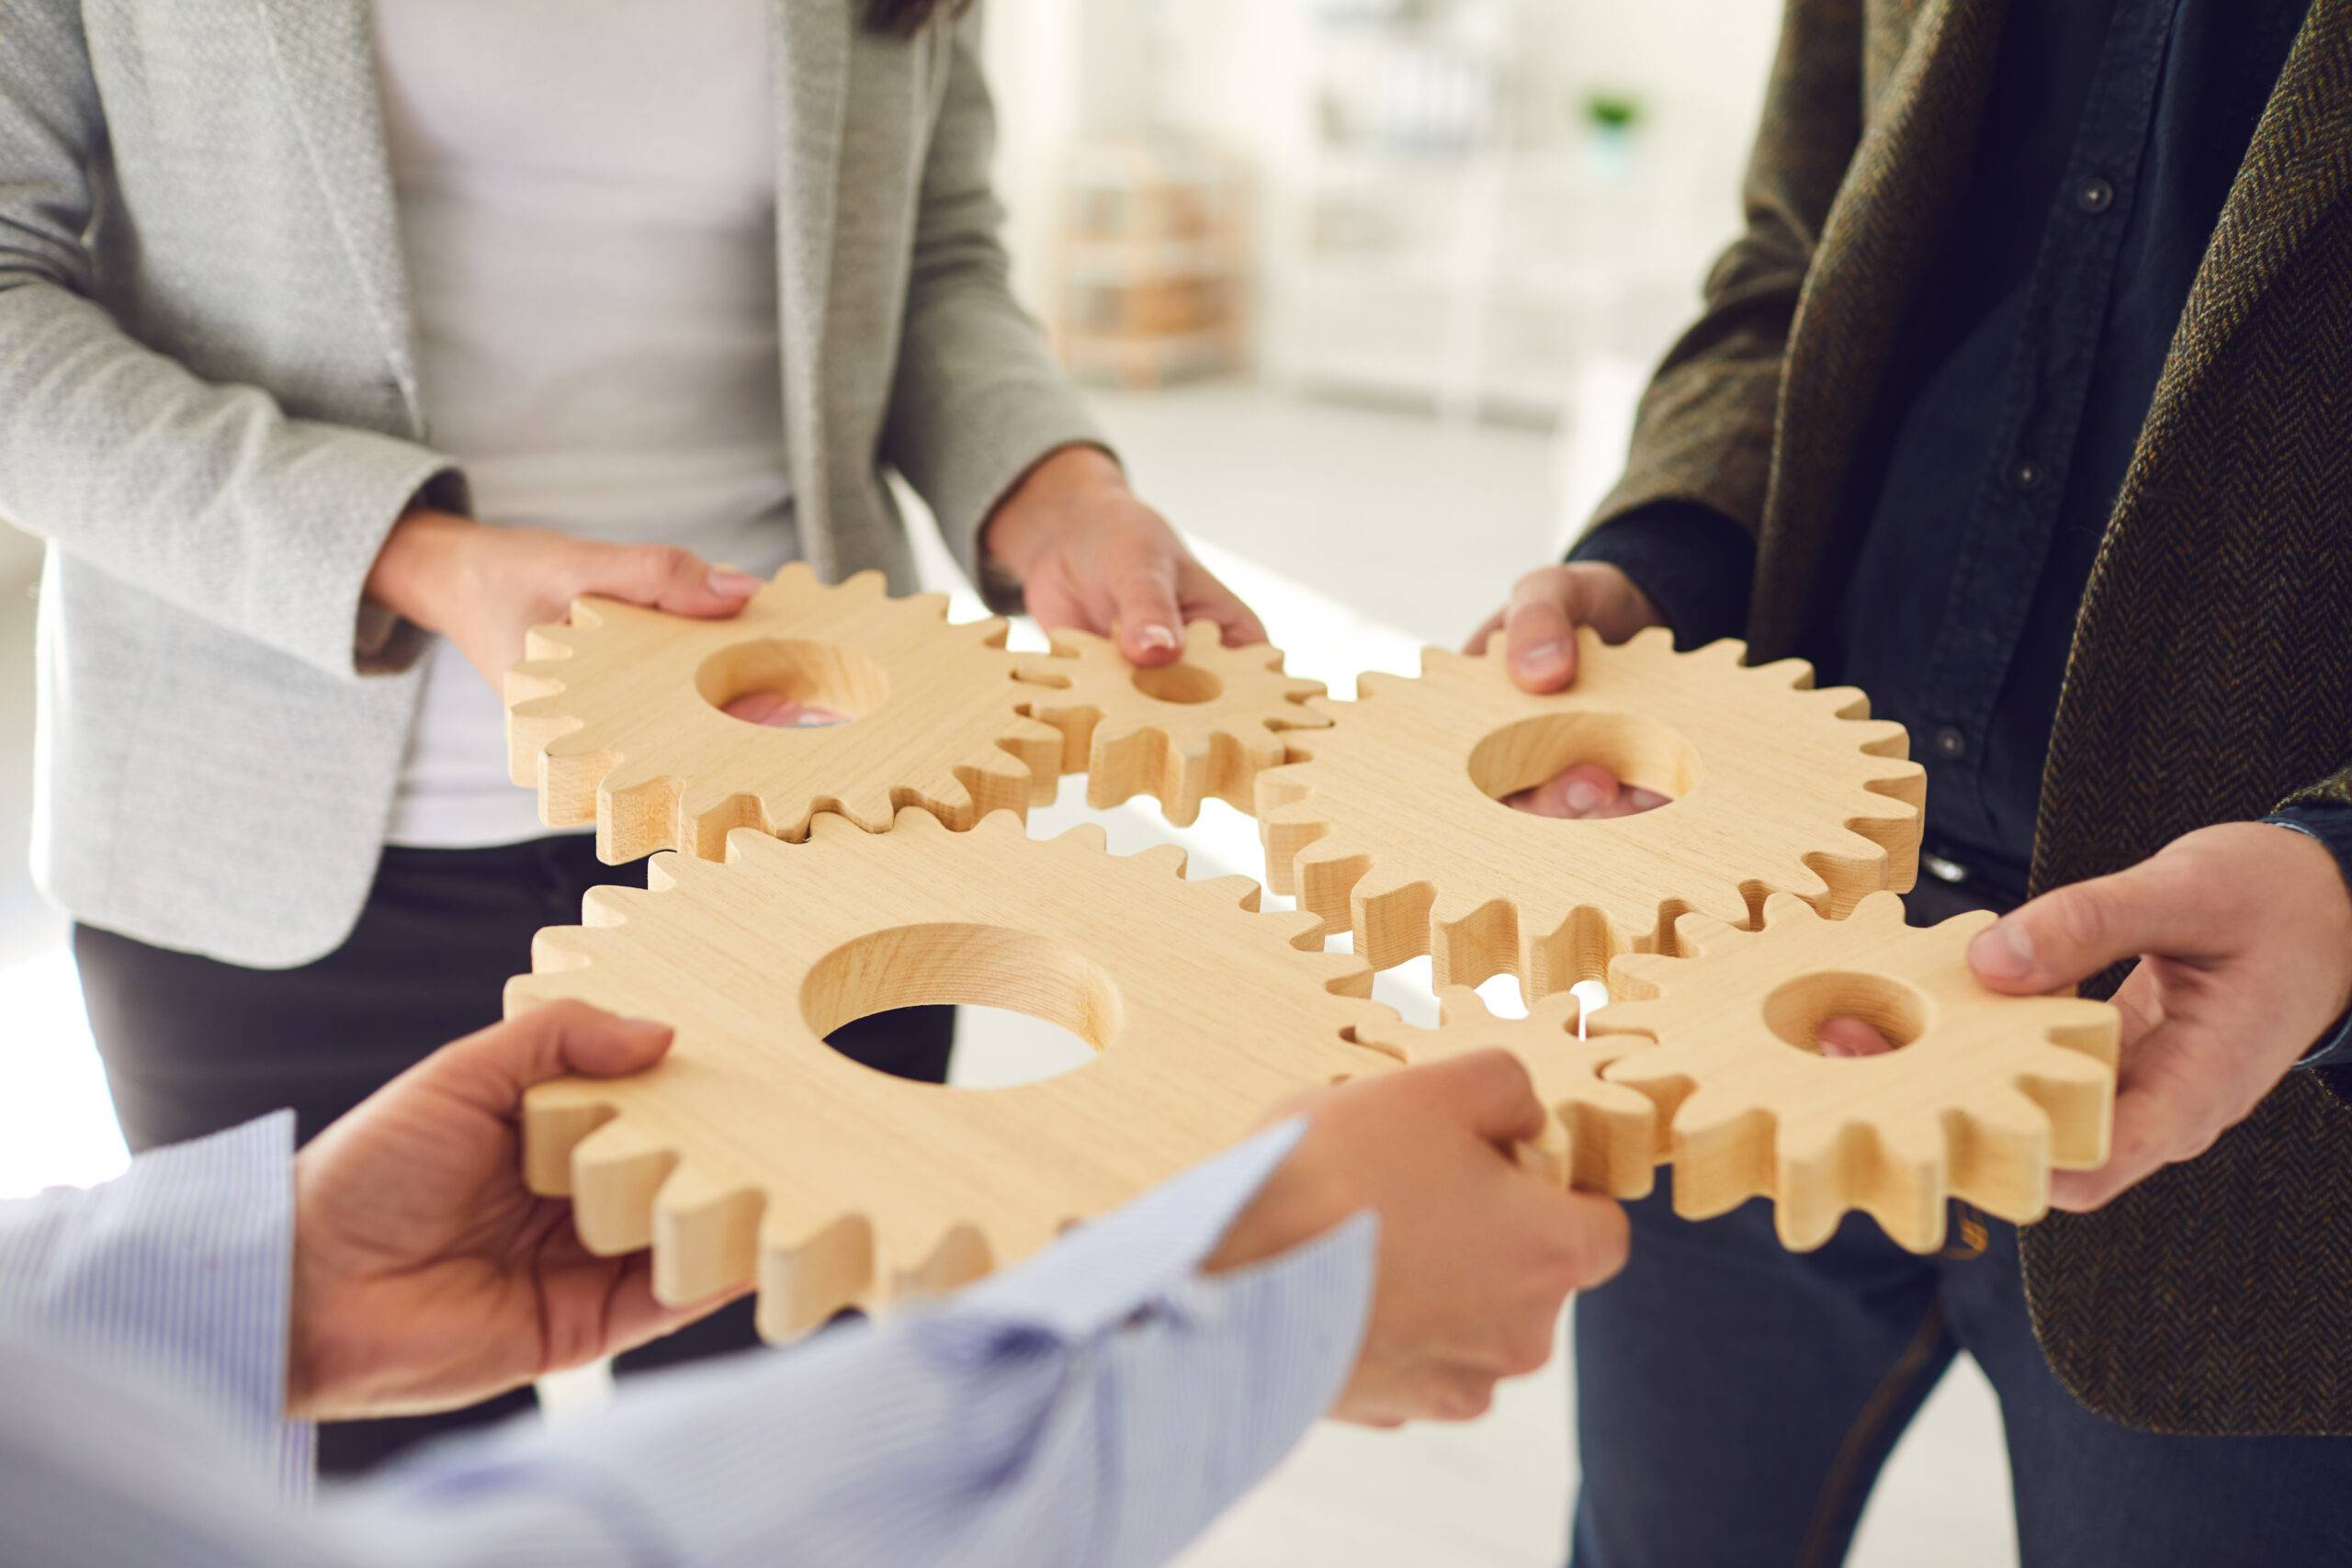 A group of business people holds wooden wheels with teeth in their hands on an office white table. Business cooperation concept business team innovation strategy integration teamwork contract integration.